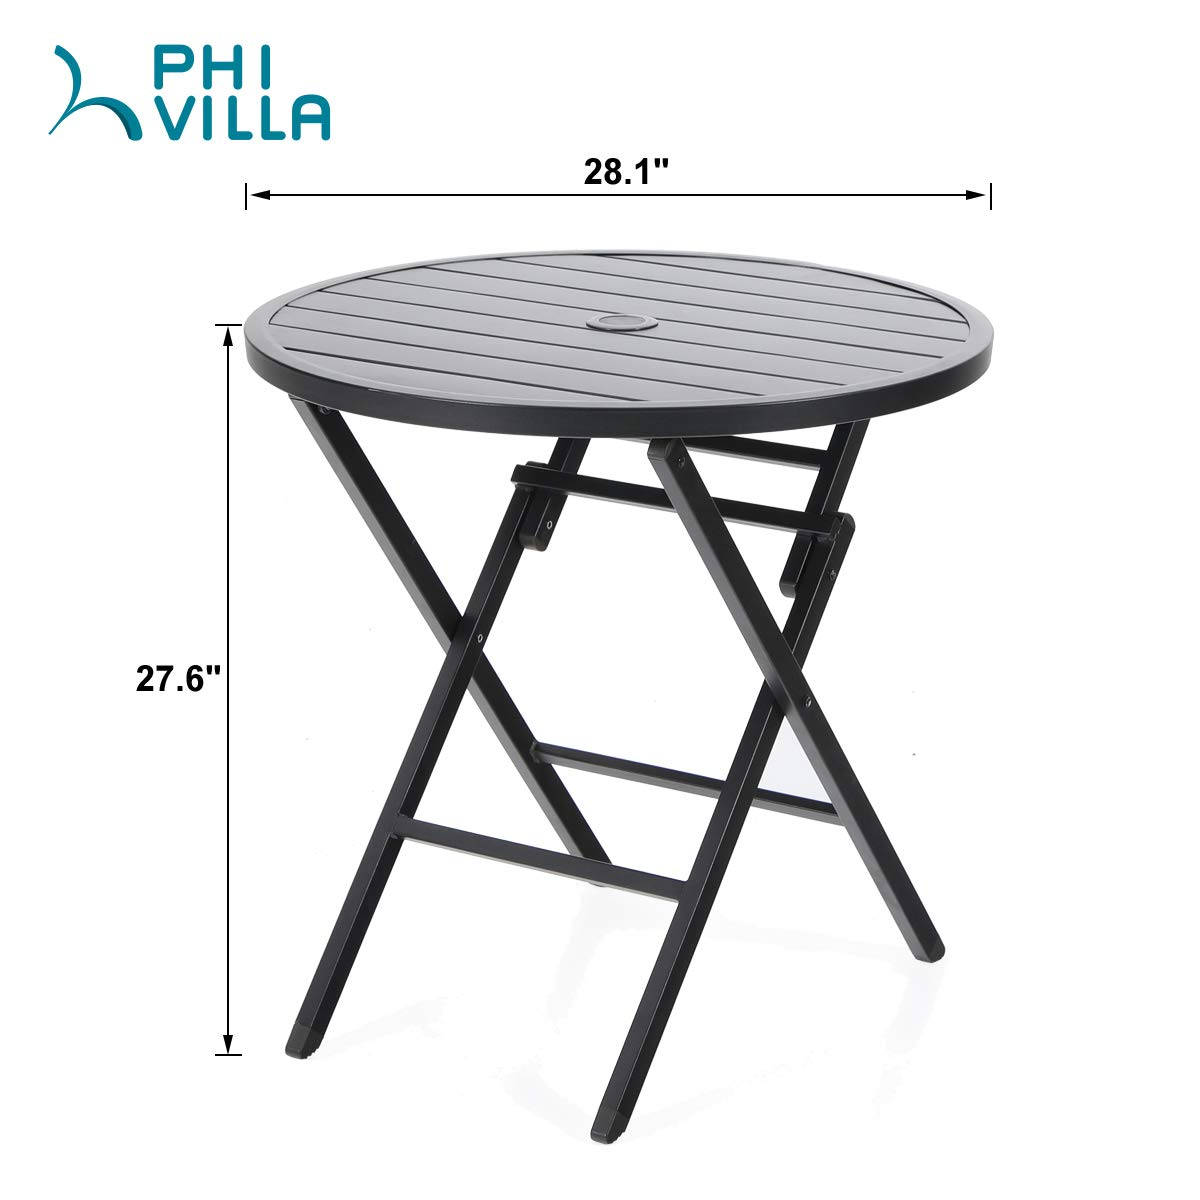 PHI VILLA Dia.28 Outdoor Patio Portable Round Folding Bistro,Dining Table with Aluminum Table Top and Metal Footing Frame